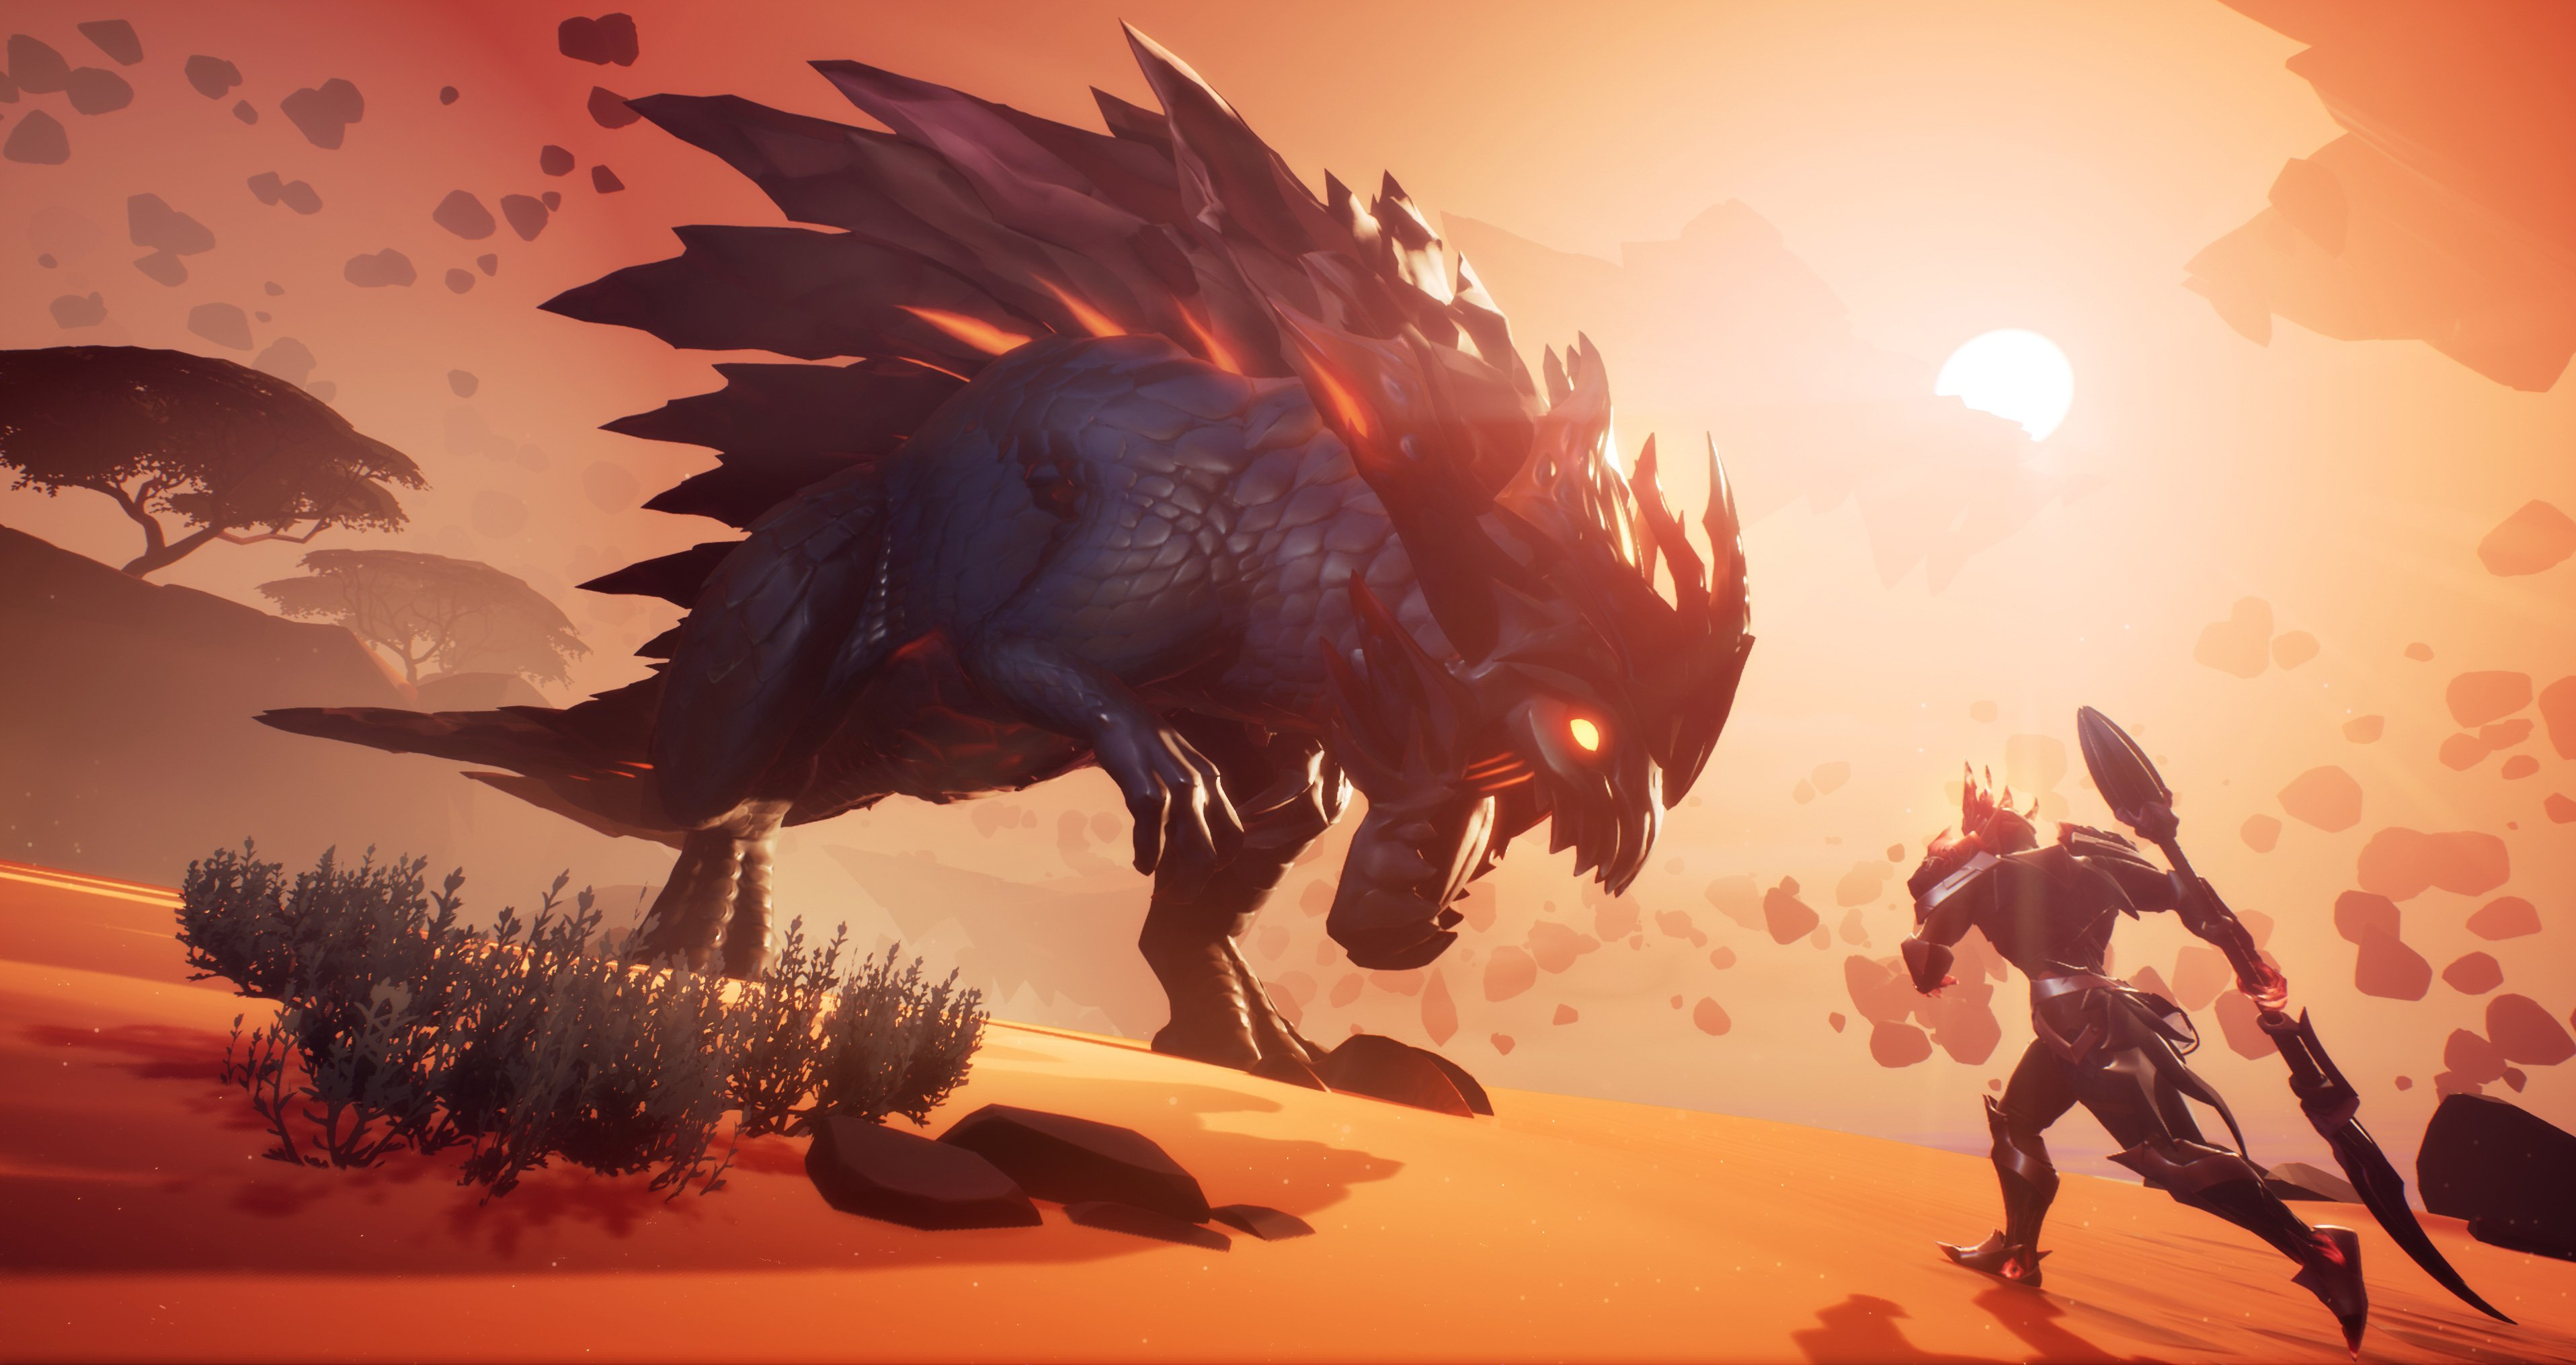 To get Scorchstone in Dauntless, you'll need to hunt a Behemoth called the Scorchstone Hellion using a Frost weapon.